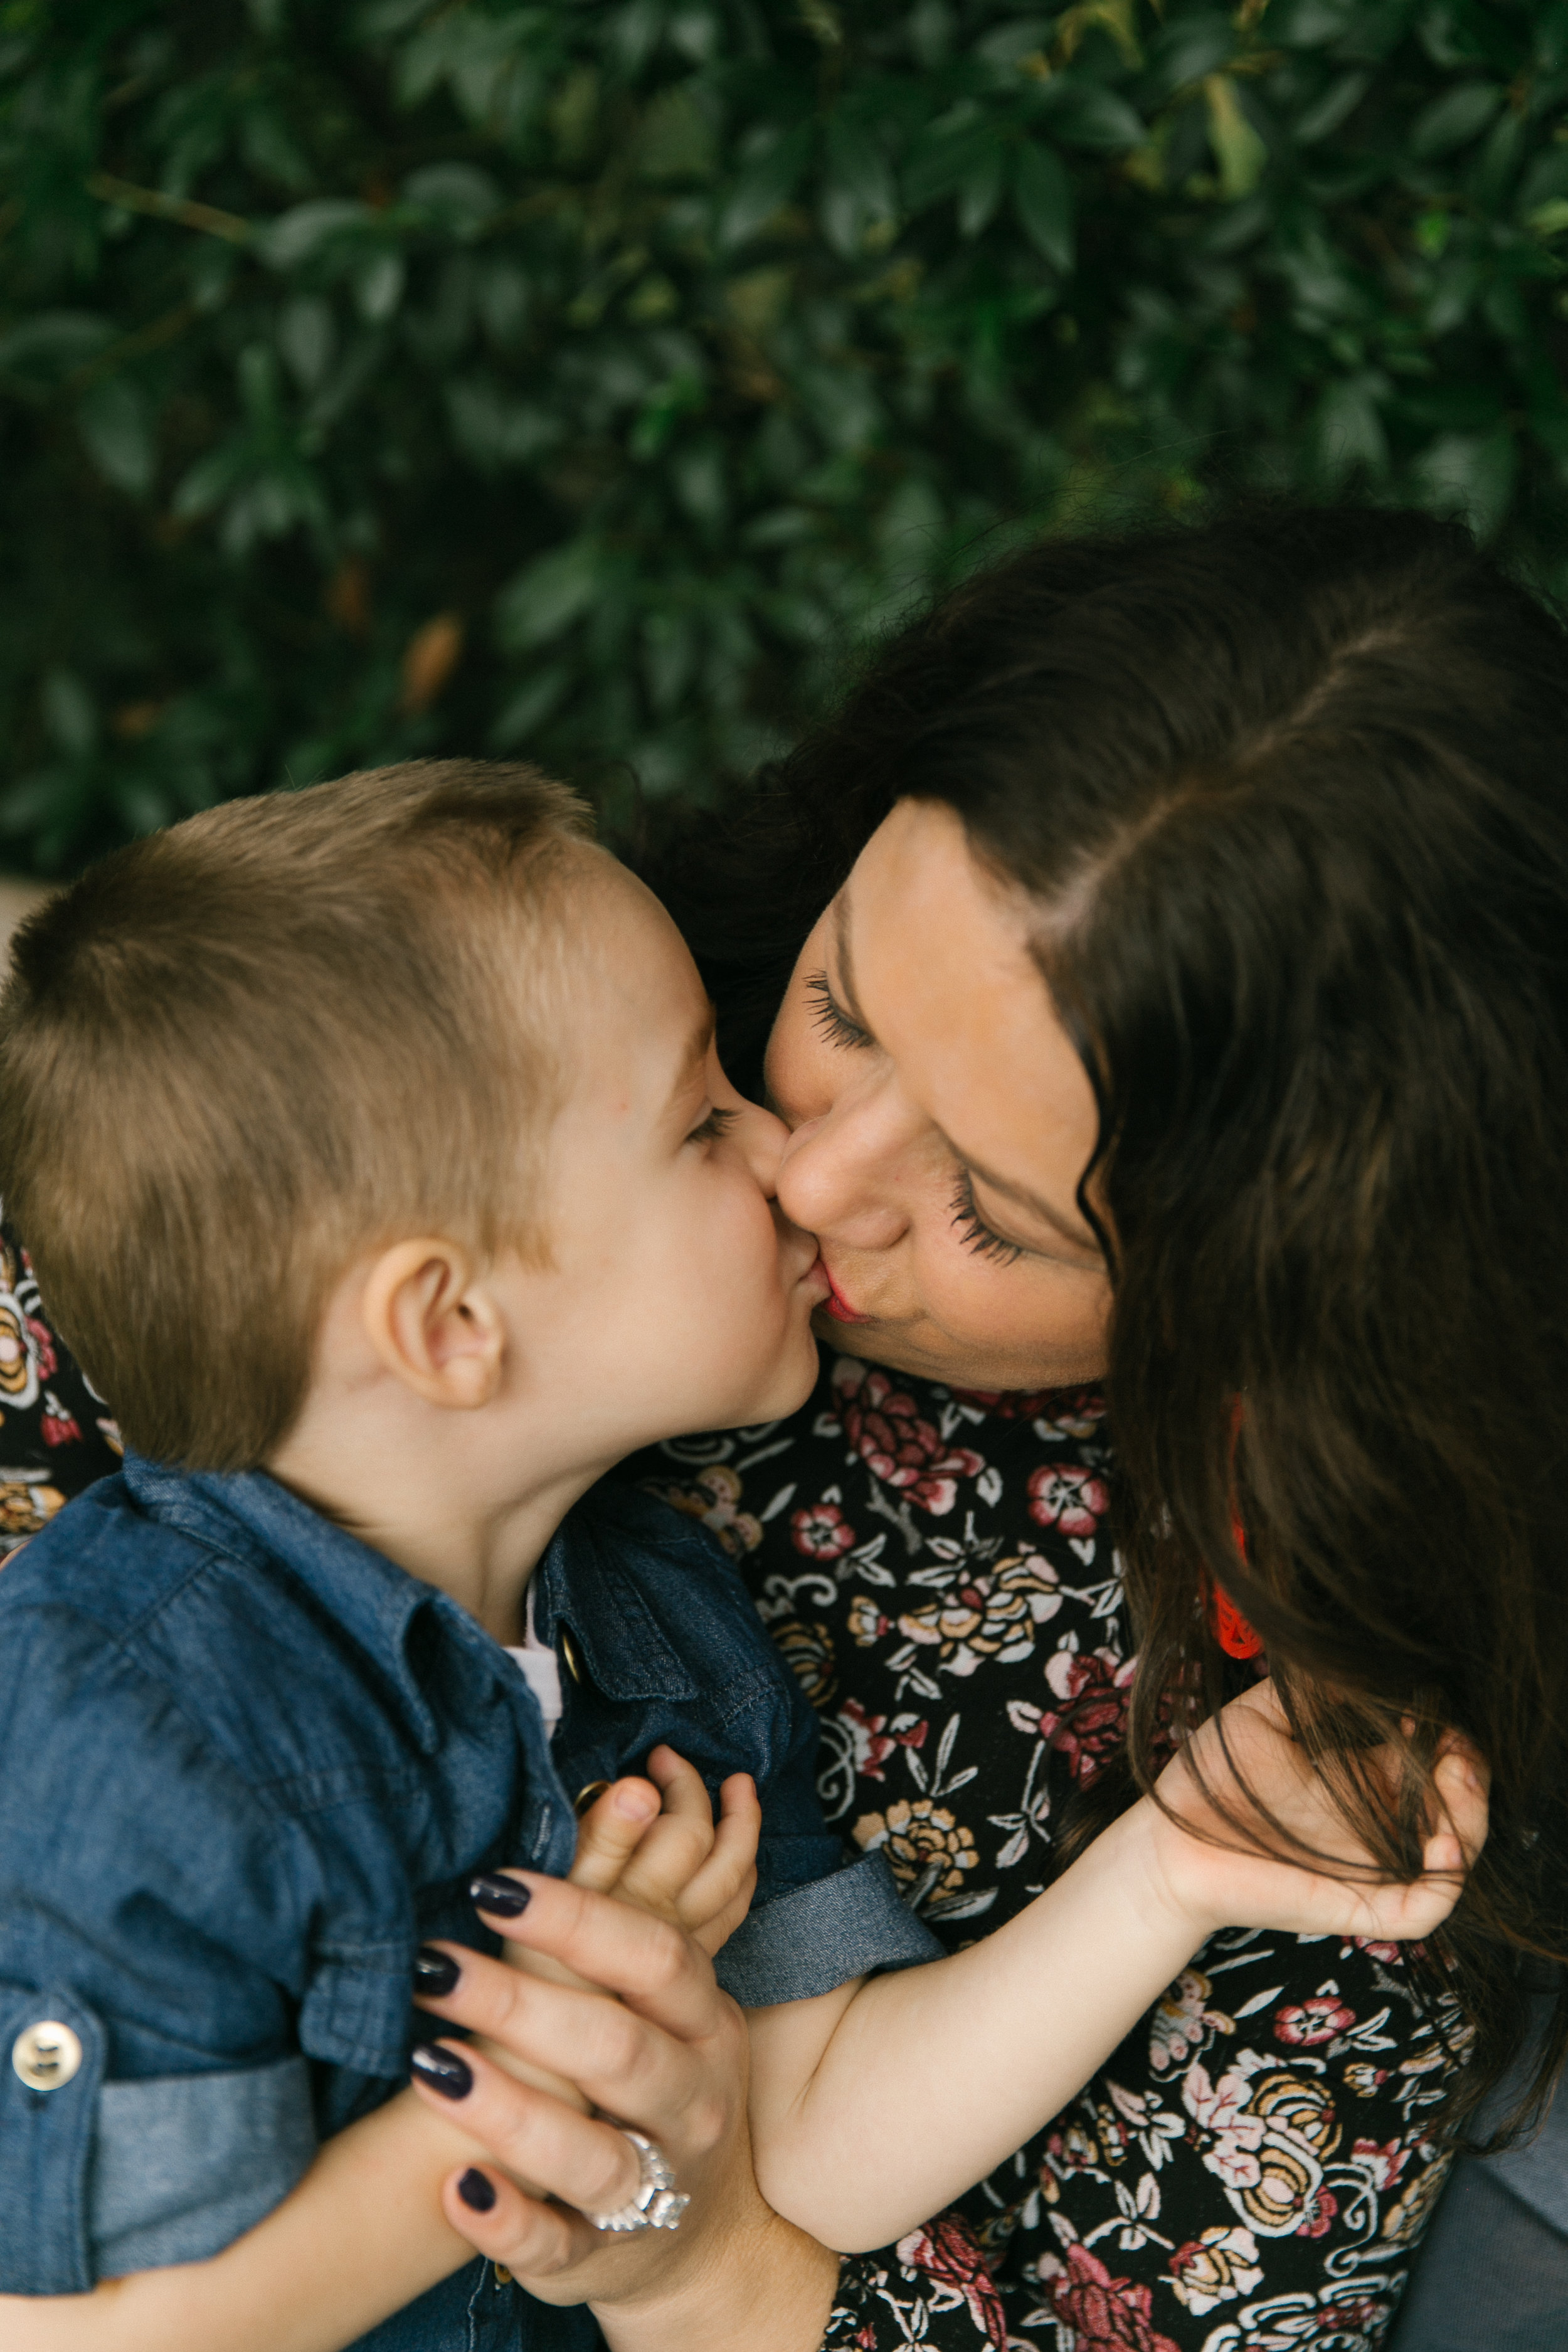 Family photos at Bellevue Botanical Garden, natural light with toddlers   Chelsea Macor Photography-6.jpg